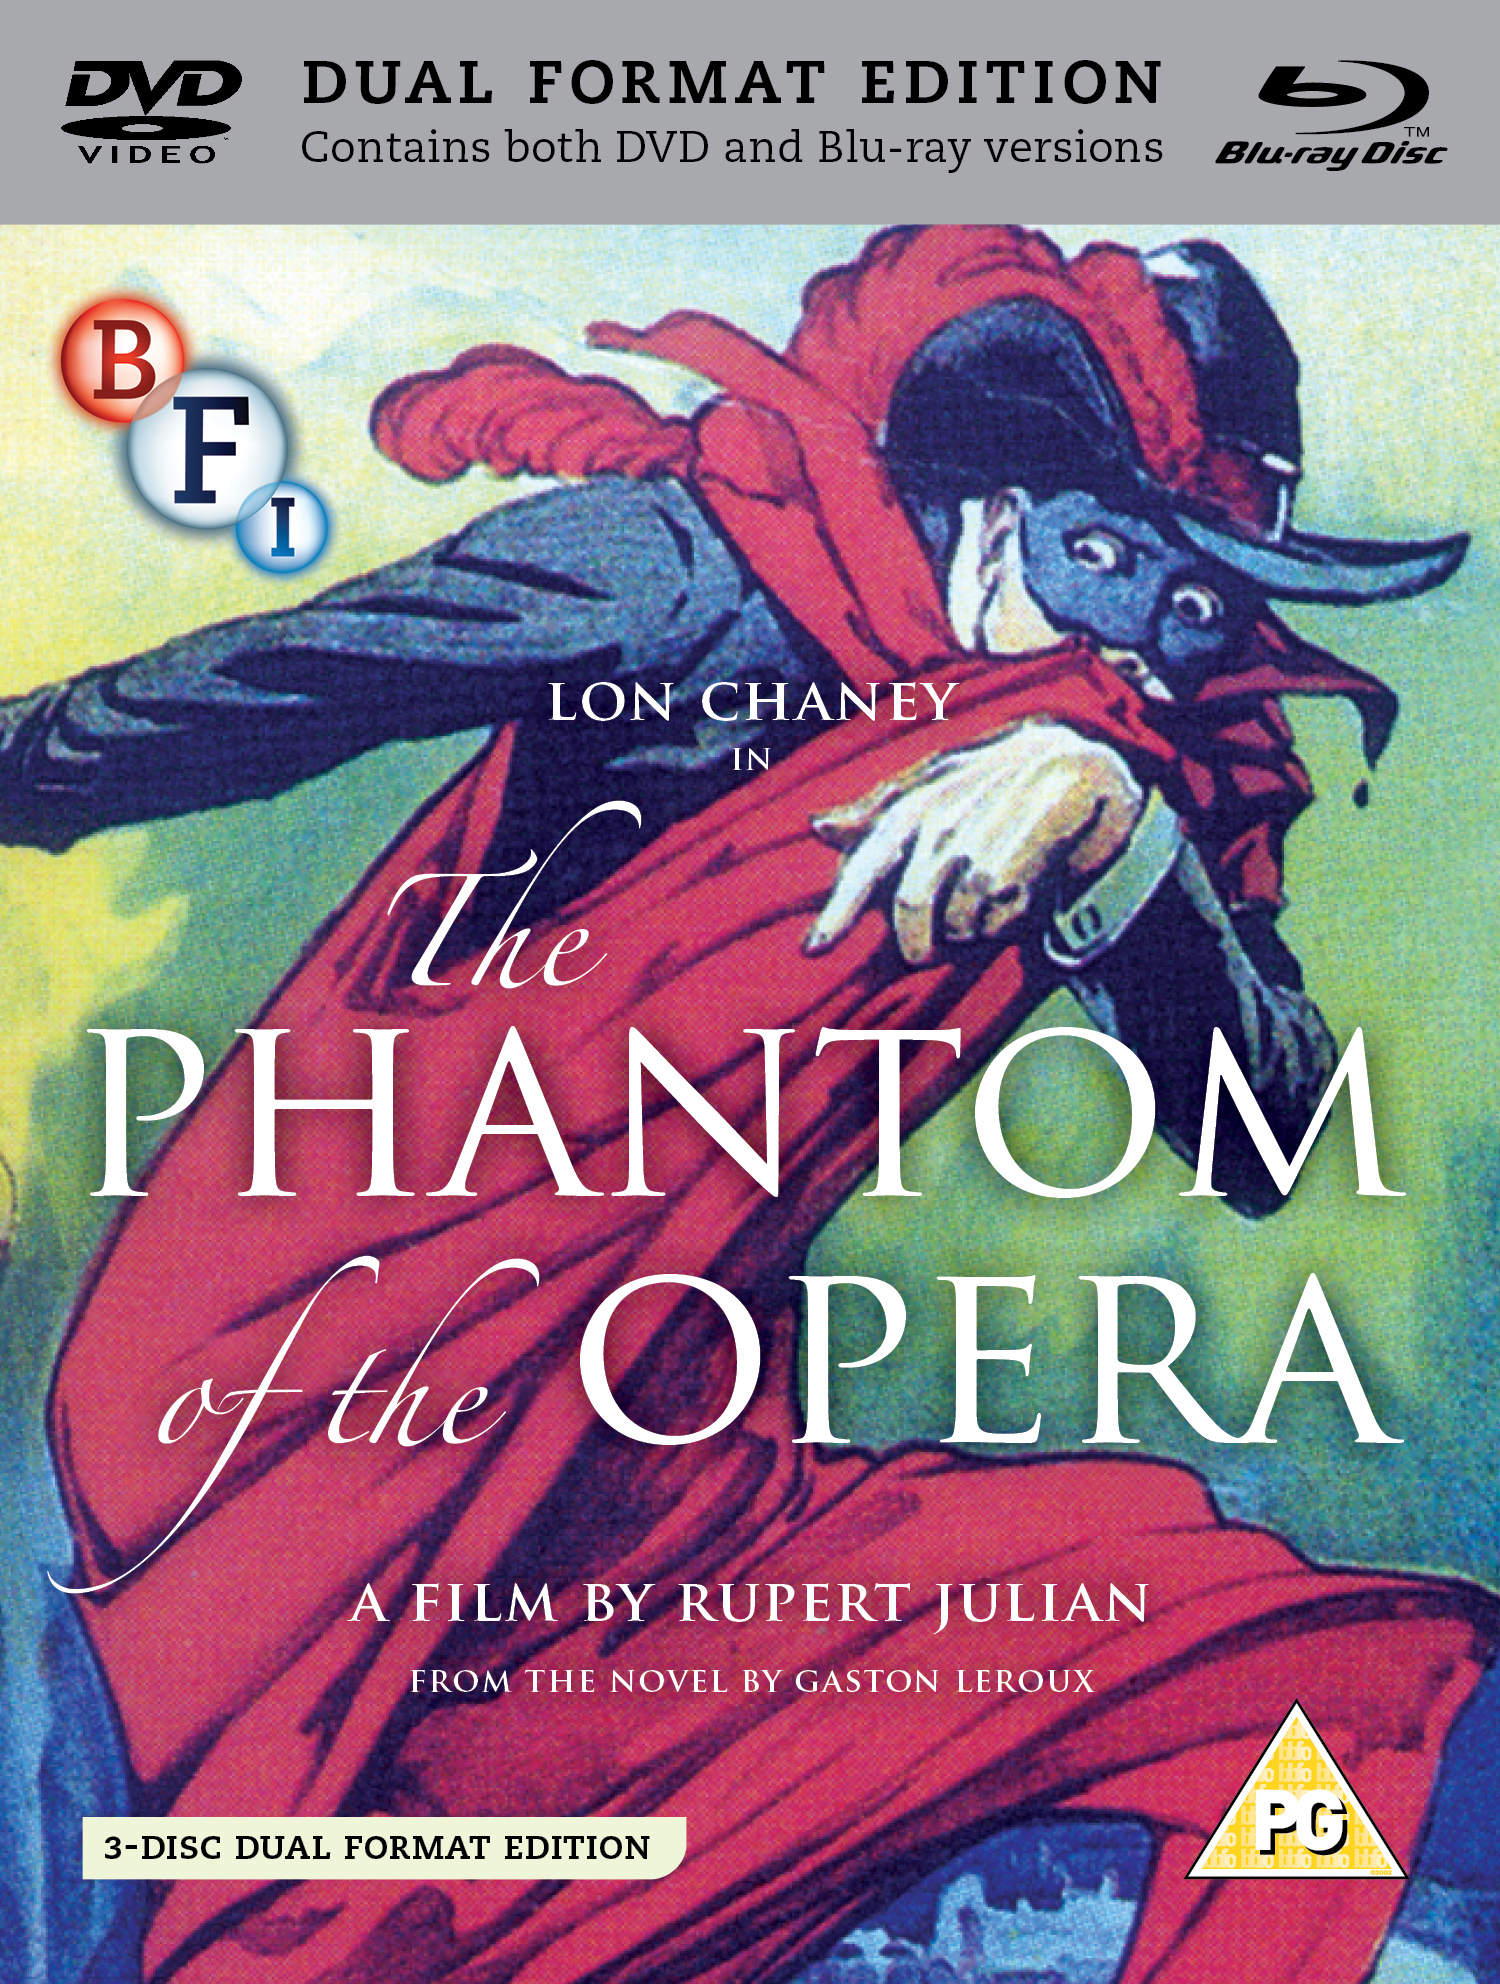 Buy The Phantom of the Opera (3-disc Dual Format Edition)